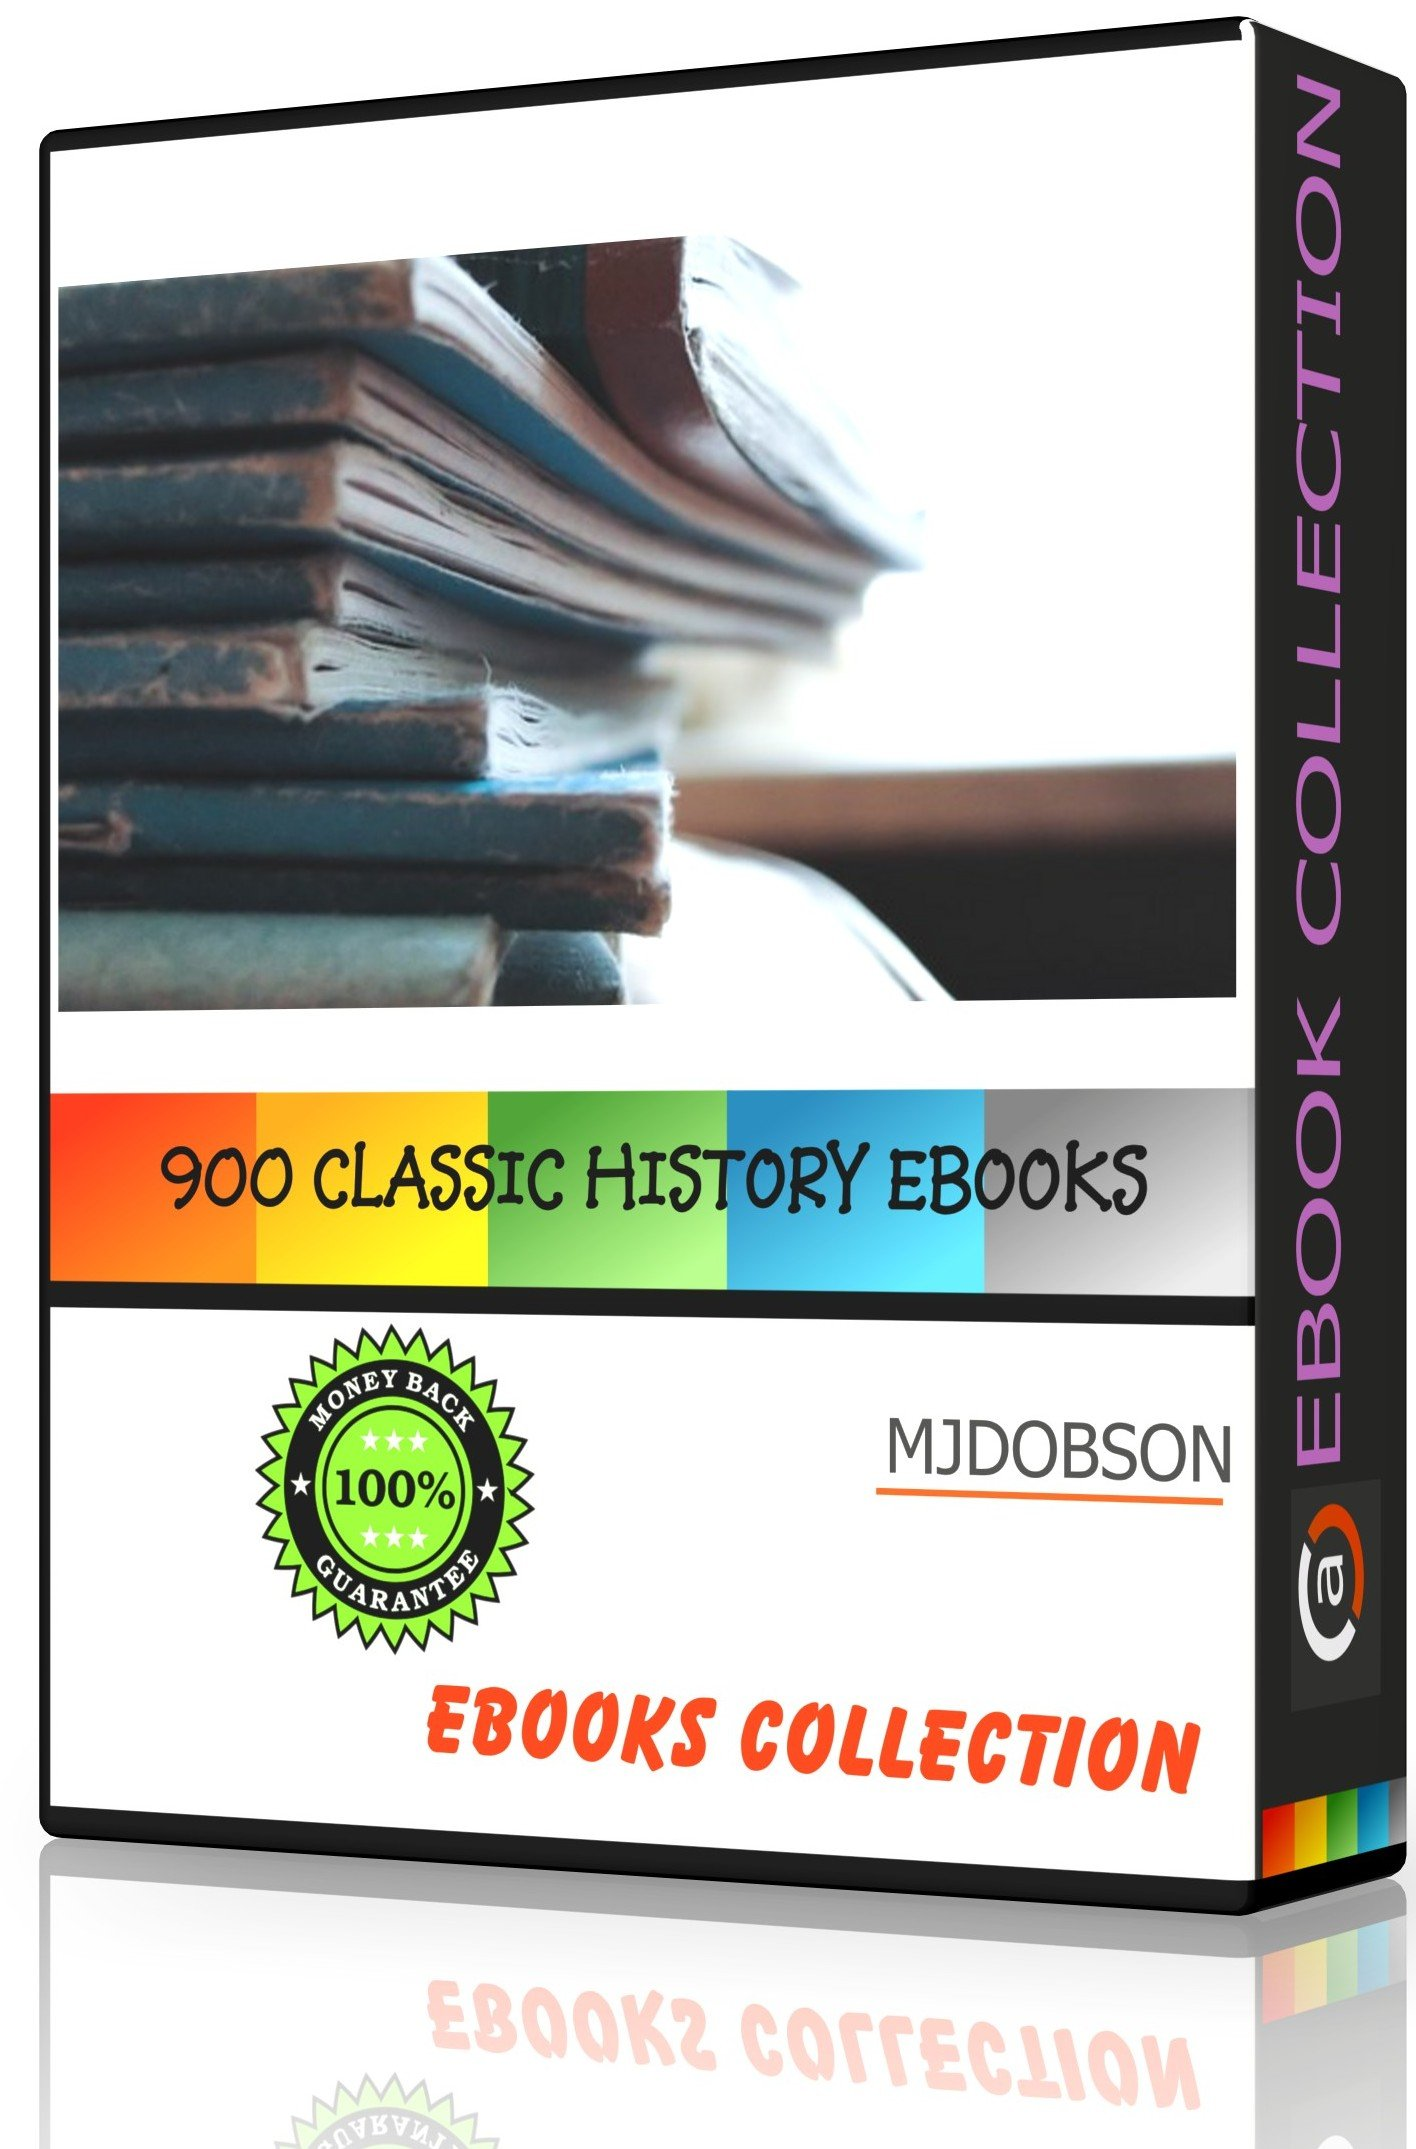 History Ebooks For Kindle, Sony Readers Etc On Dvd(md98) 900+ Classic